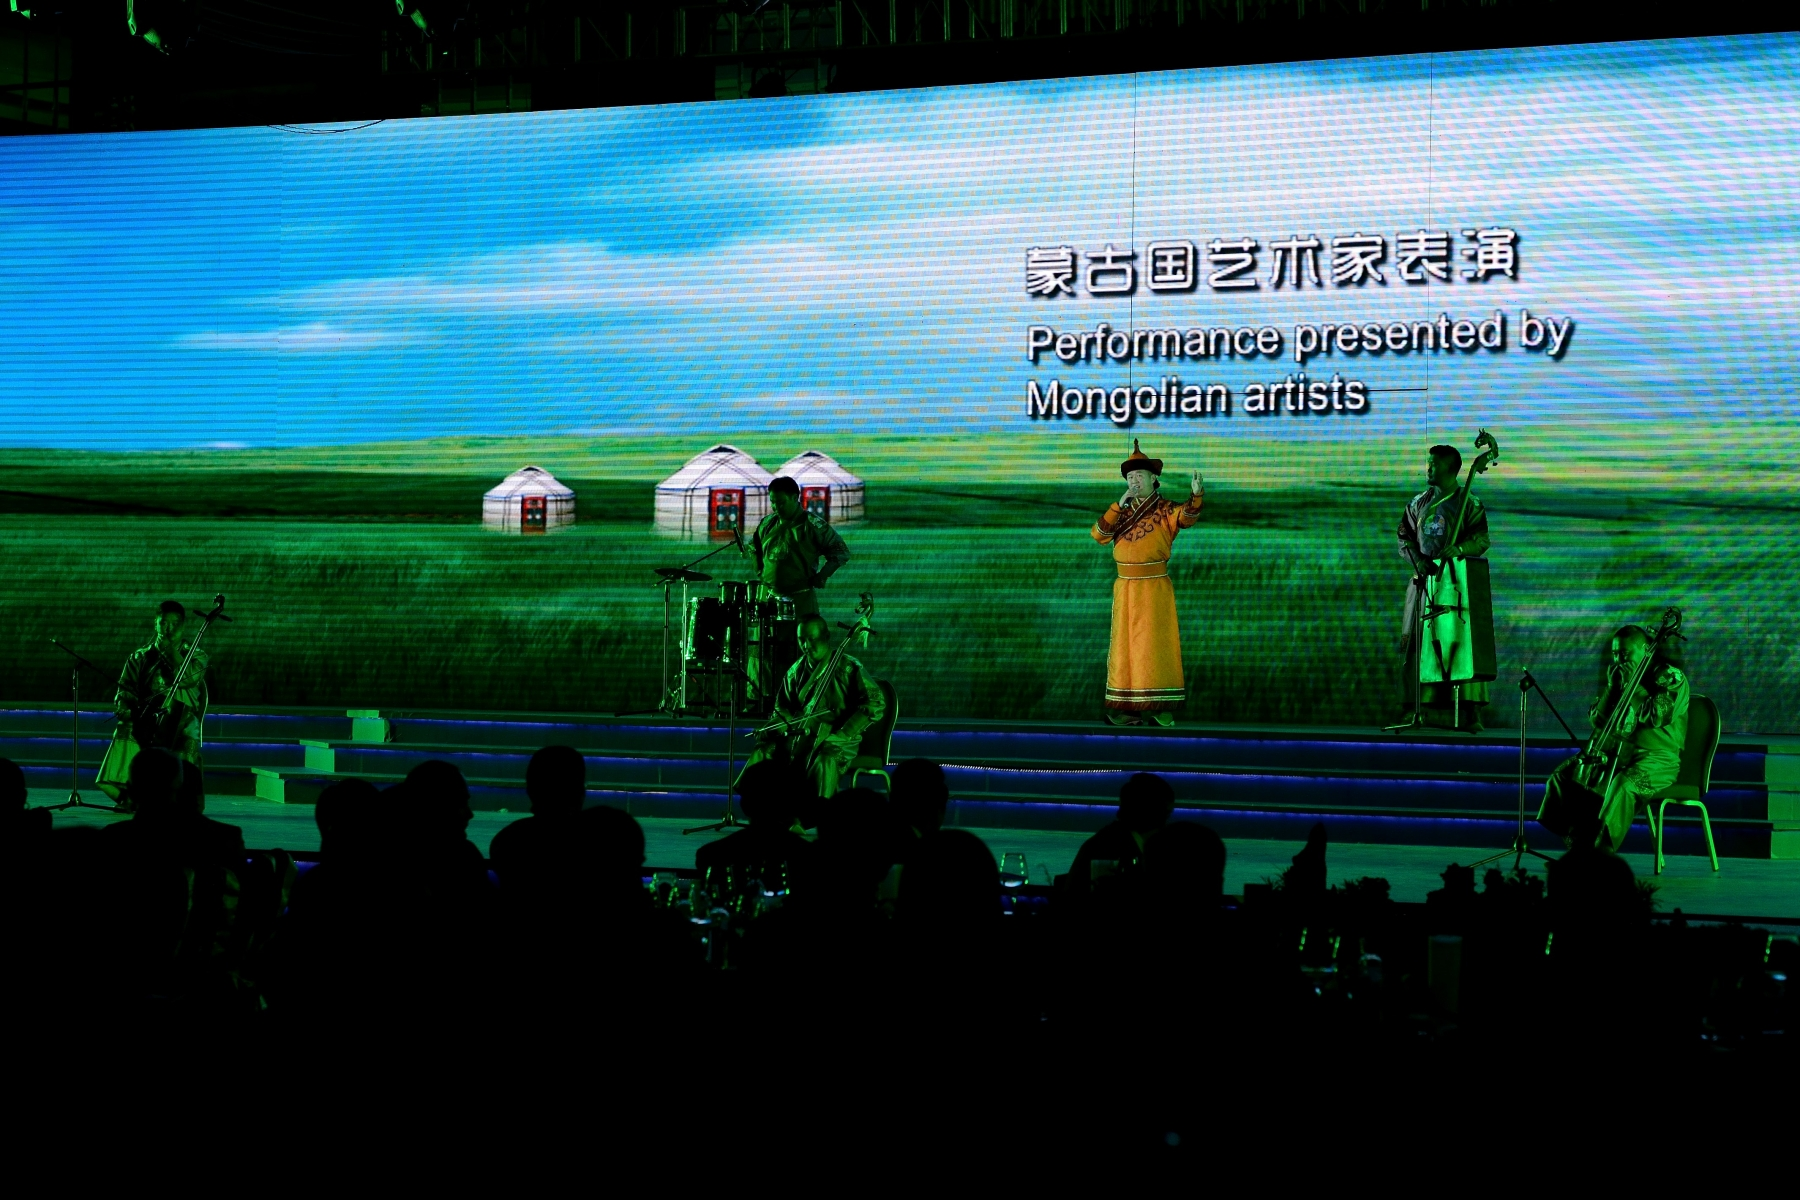 The exposition featured a segment on Mongolia, where Their Excellencies will soon undertake a State visit from October 24 to 26, 2013.